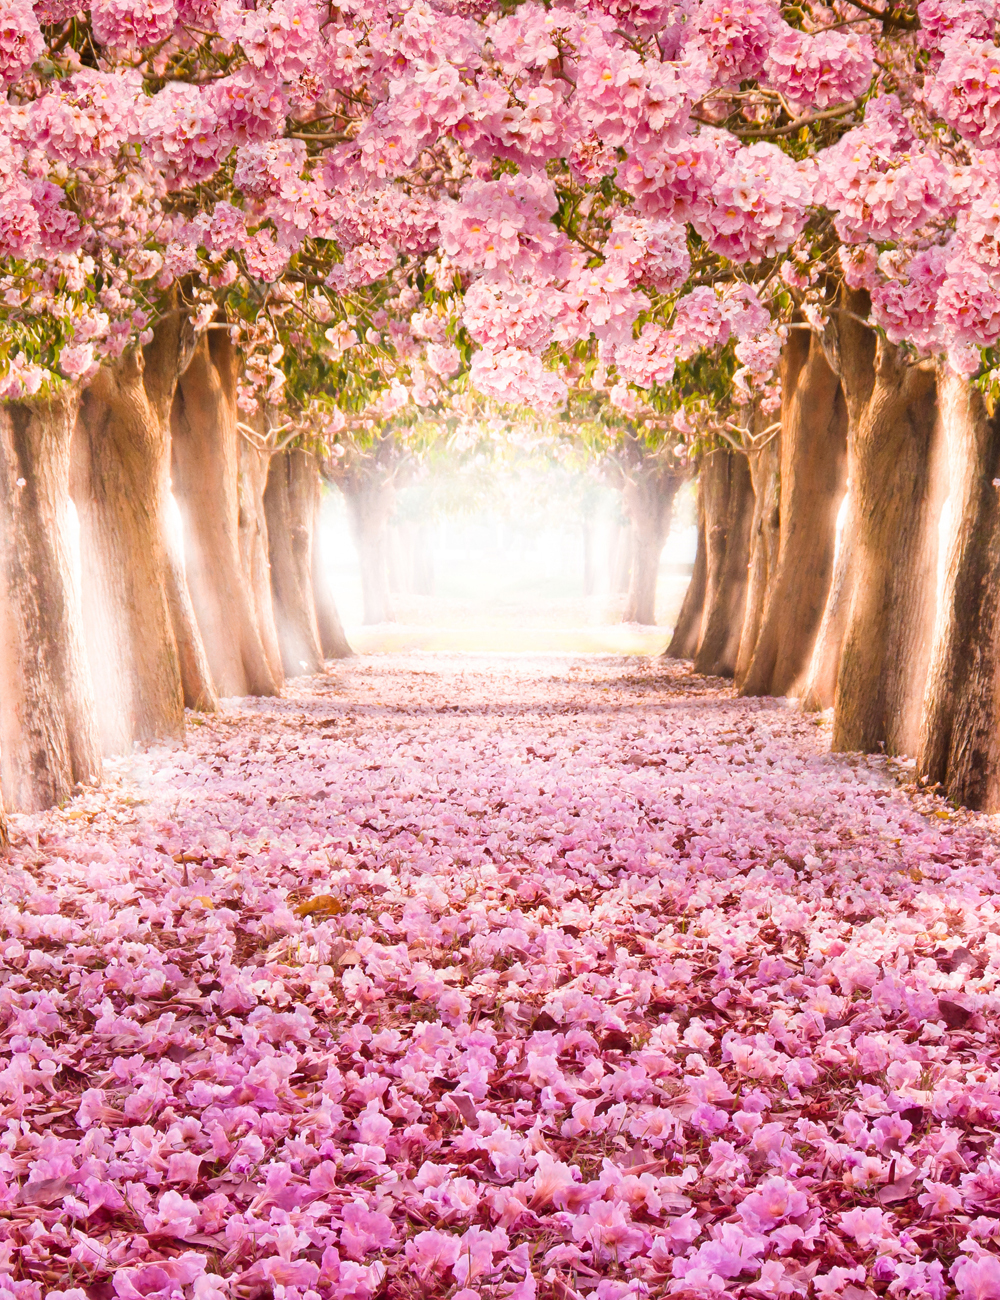 send rolled ! 5'X7' pink flower tree Backdrop - romantic tunnel, girls birthday - Printed Fabric Photography Background G0001